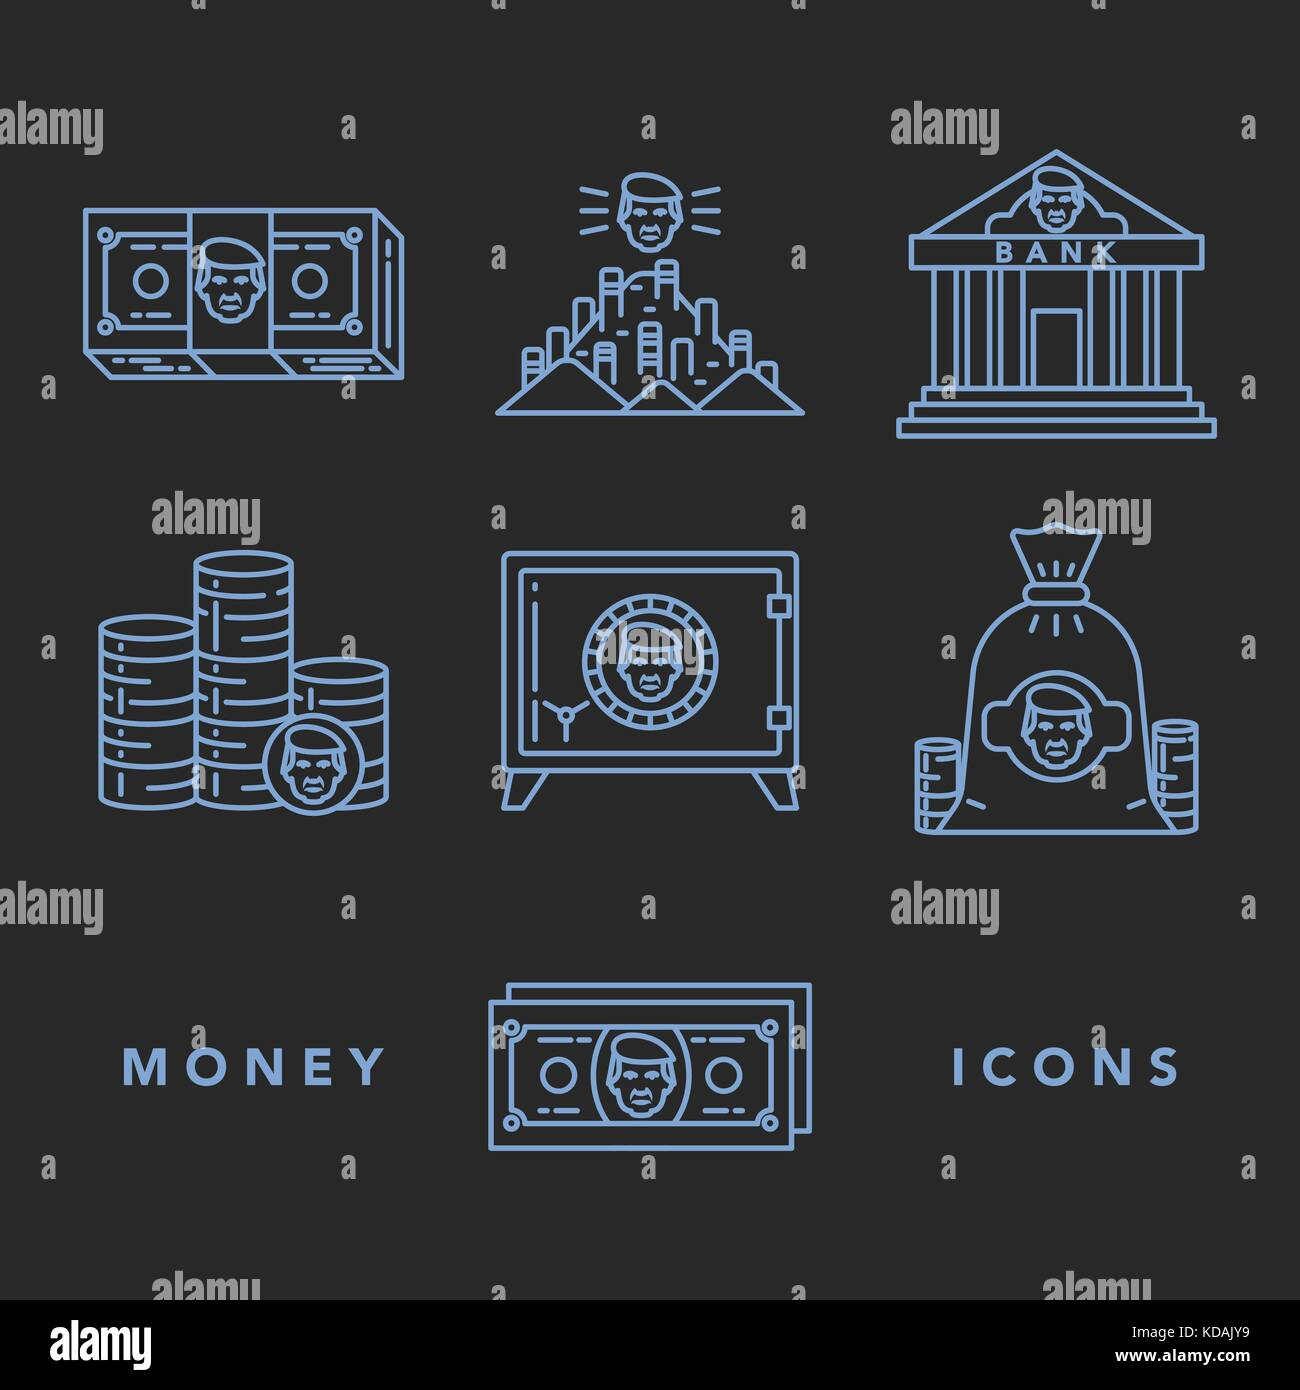 Vector icons set of money and finance attributes such as banknotes, coins, strongbox and bank on white background - Stock Vector